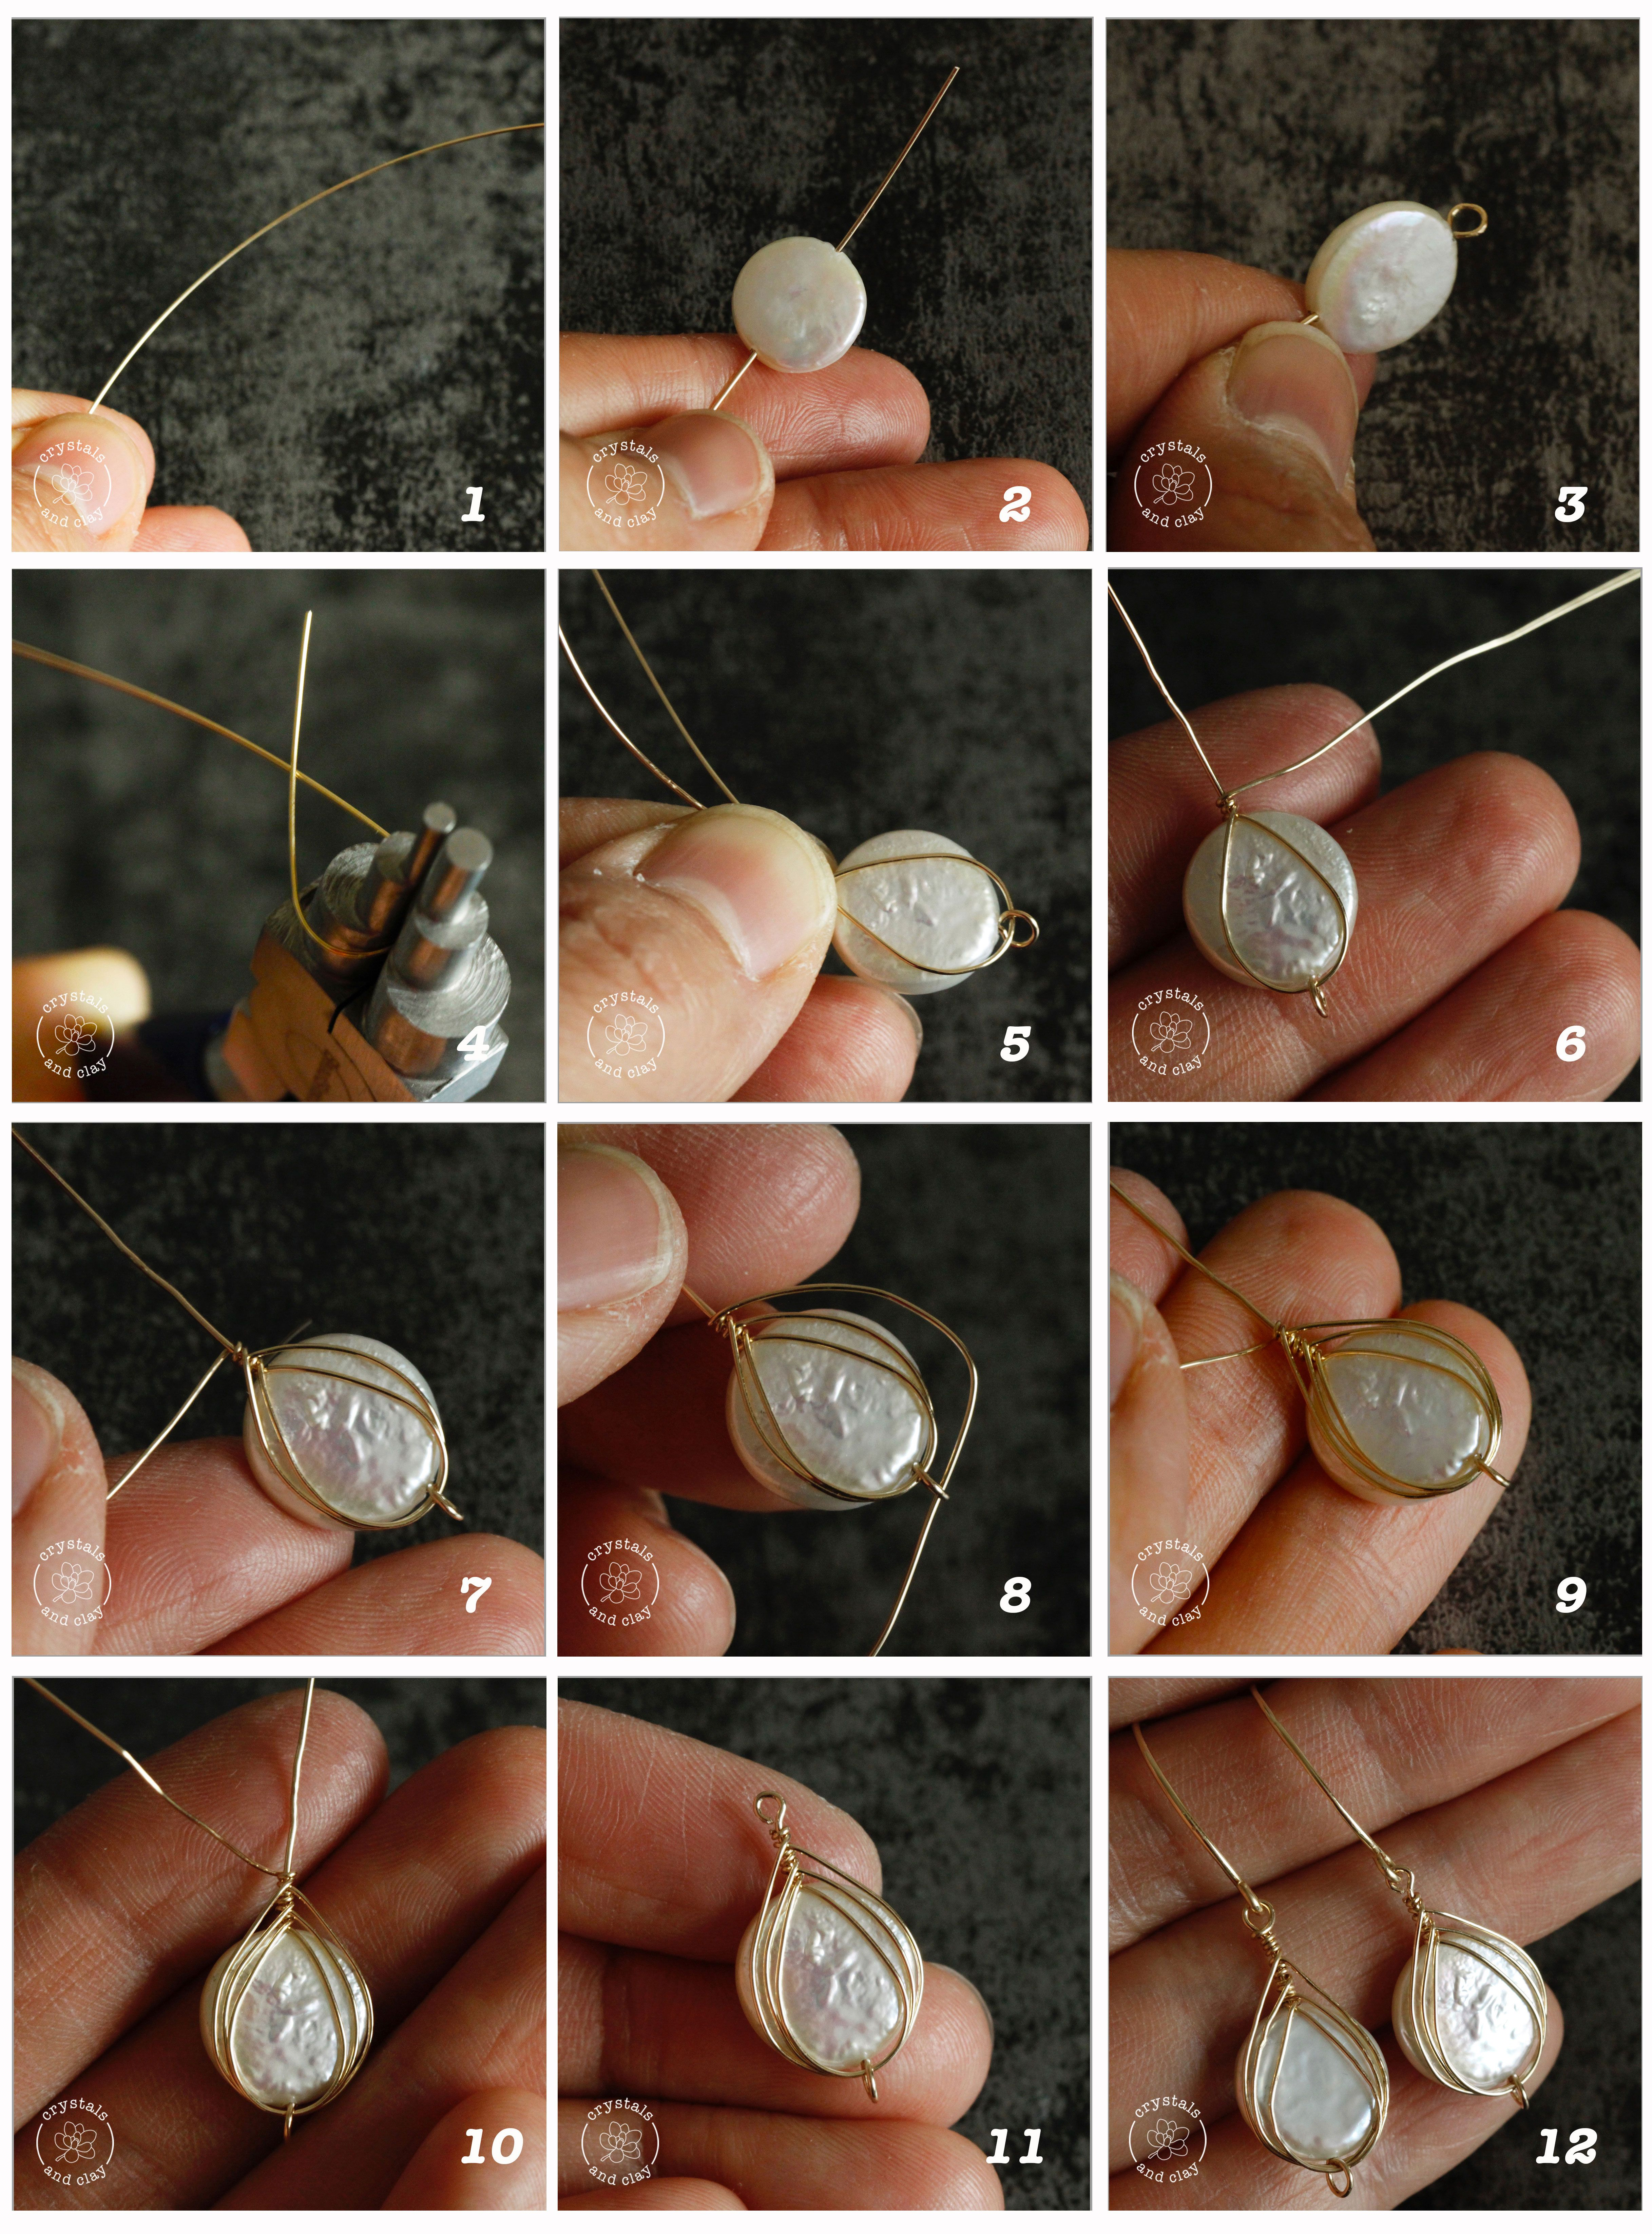 This jewelry making tutorial shows you how to make Herringbone weave wire wrapping and its two vari